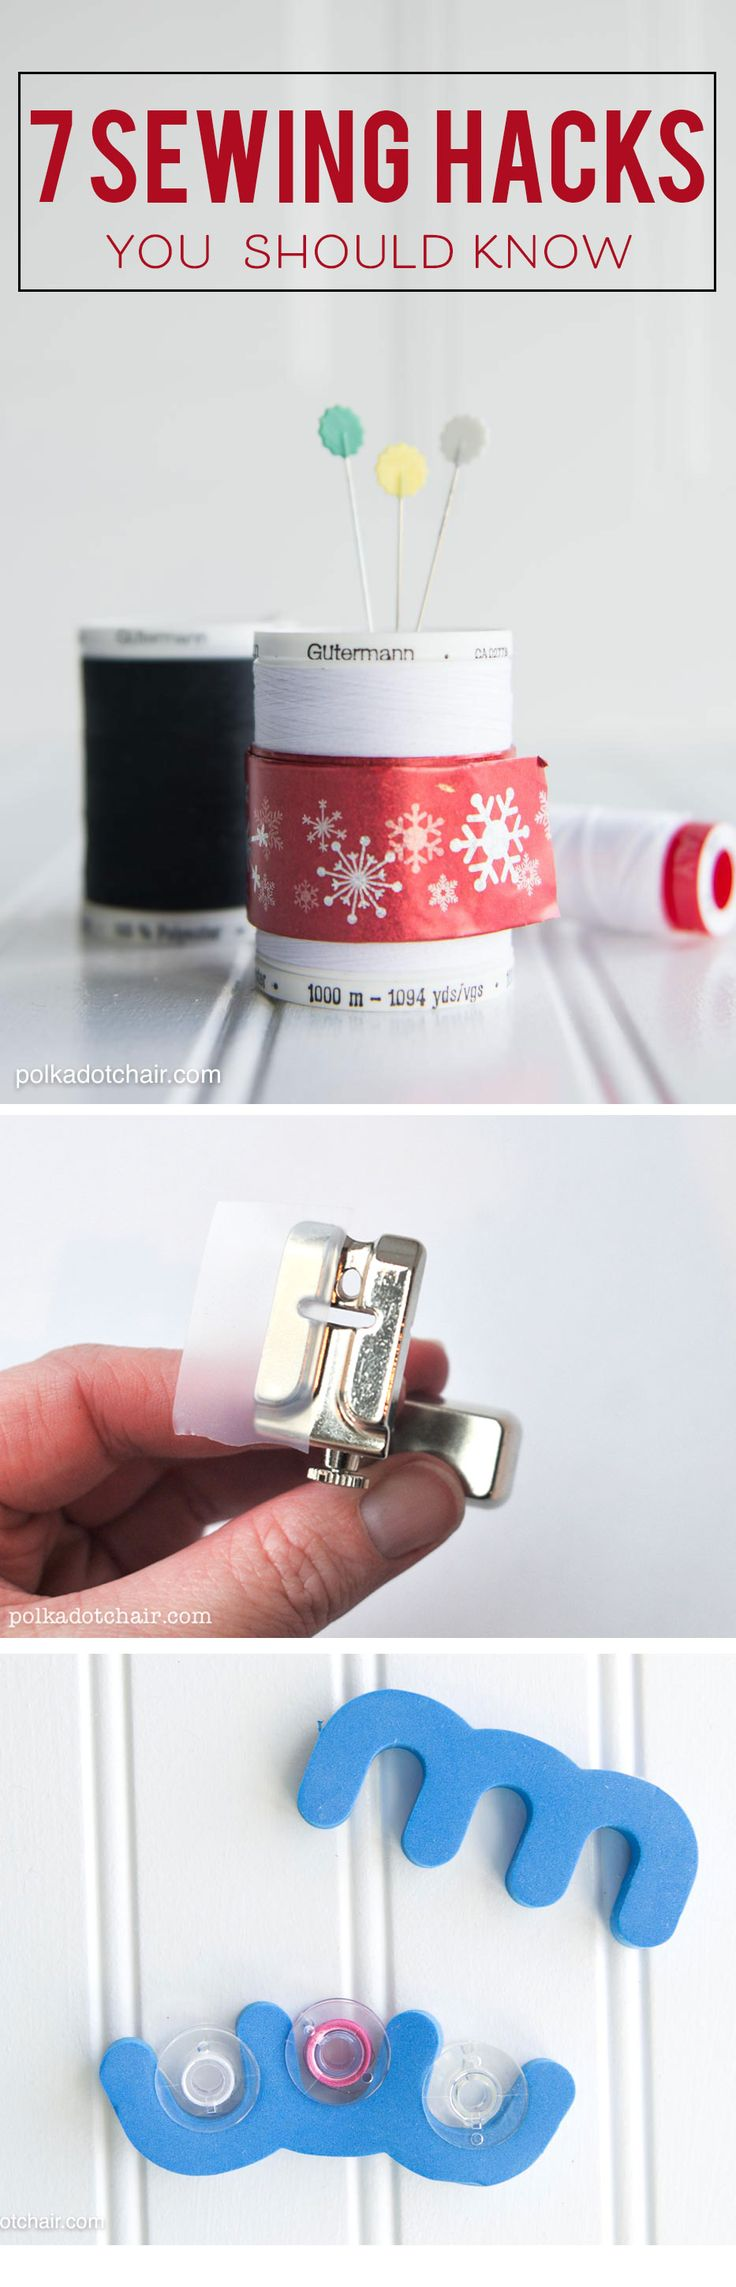 7 Amazing Sewing Hacks you should know about, love the one with the slap bracelet to keep thread from coming off the spool!